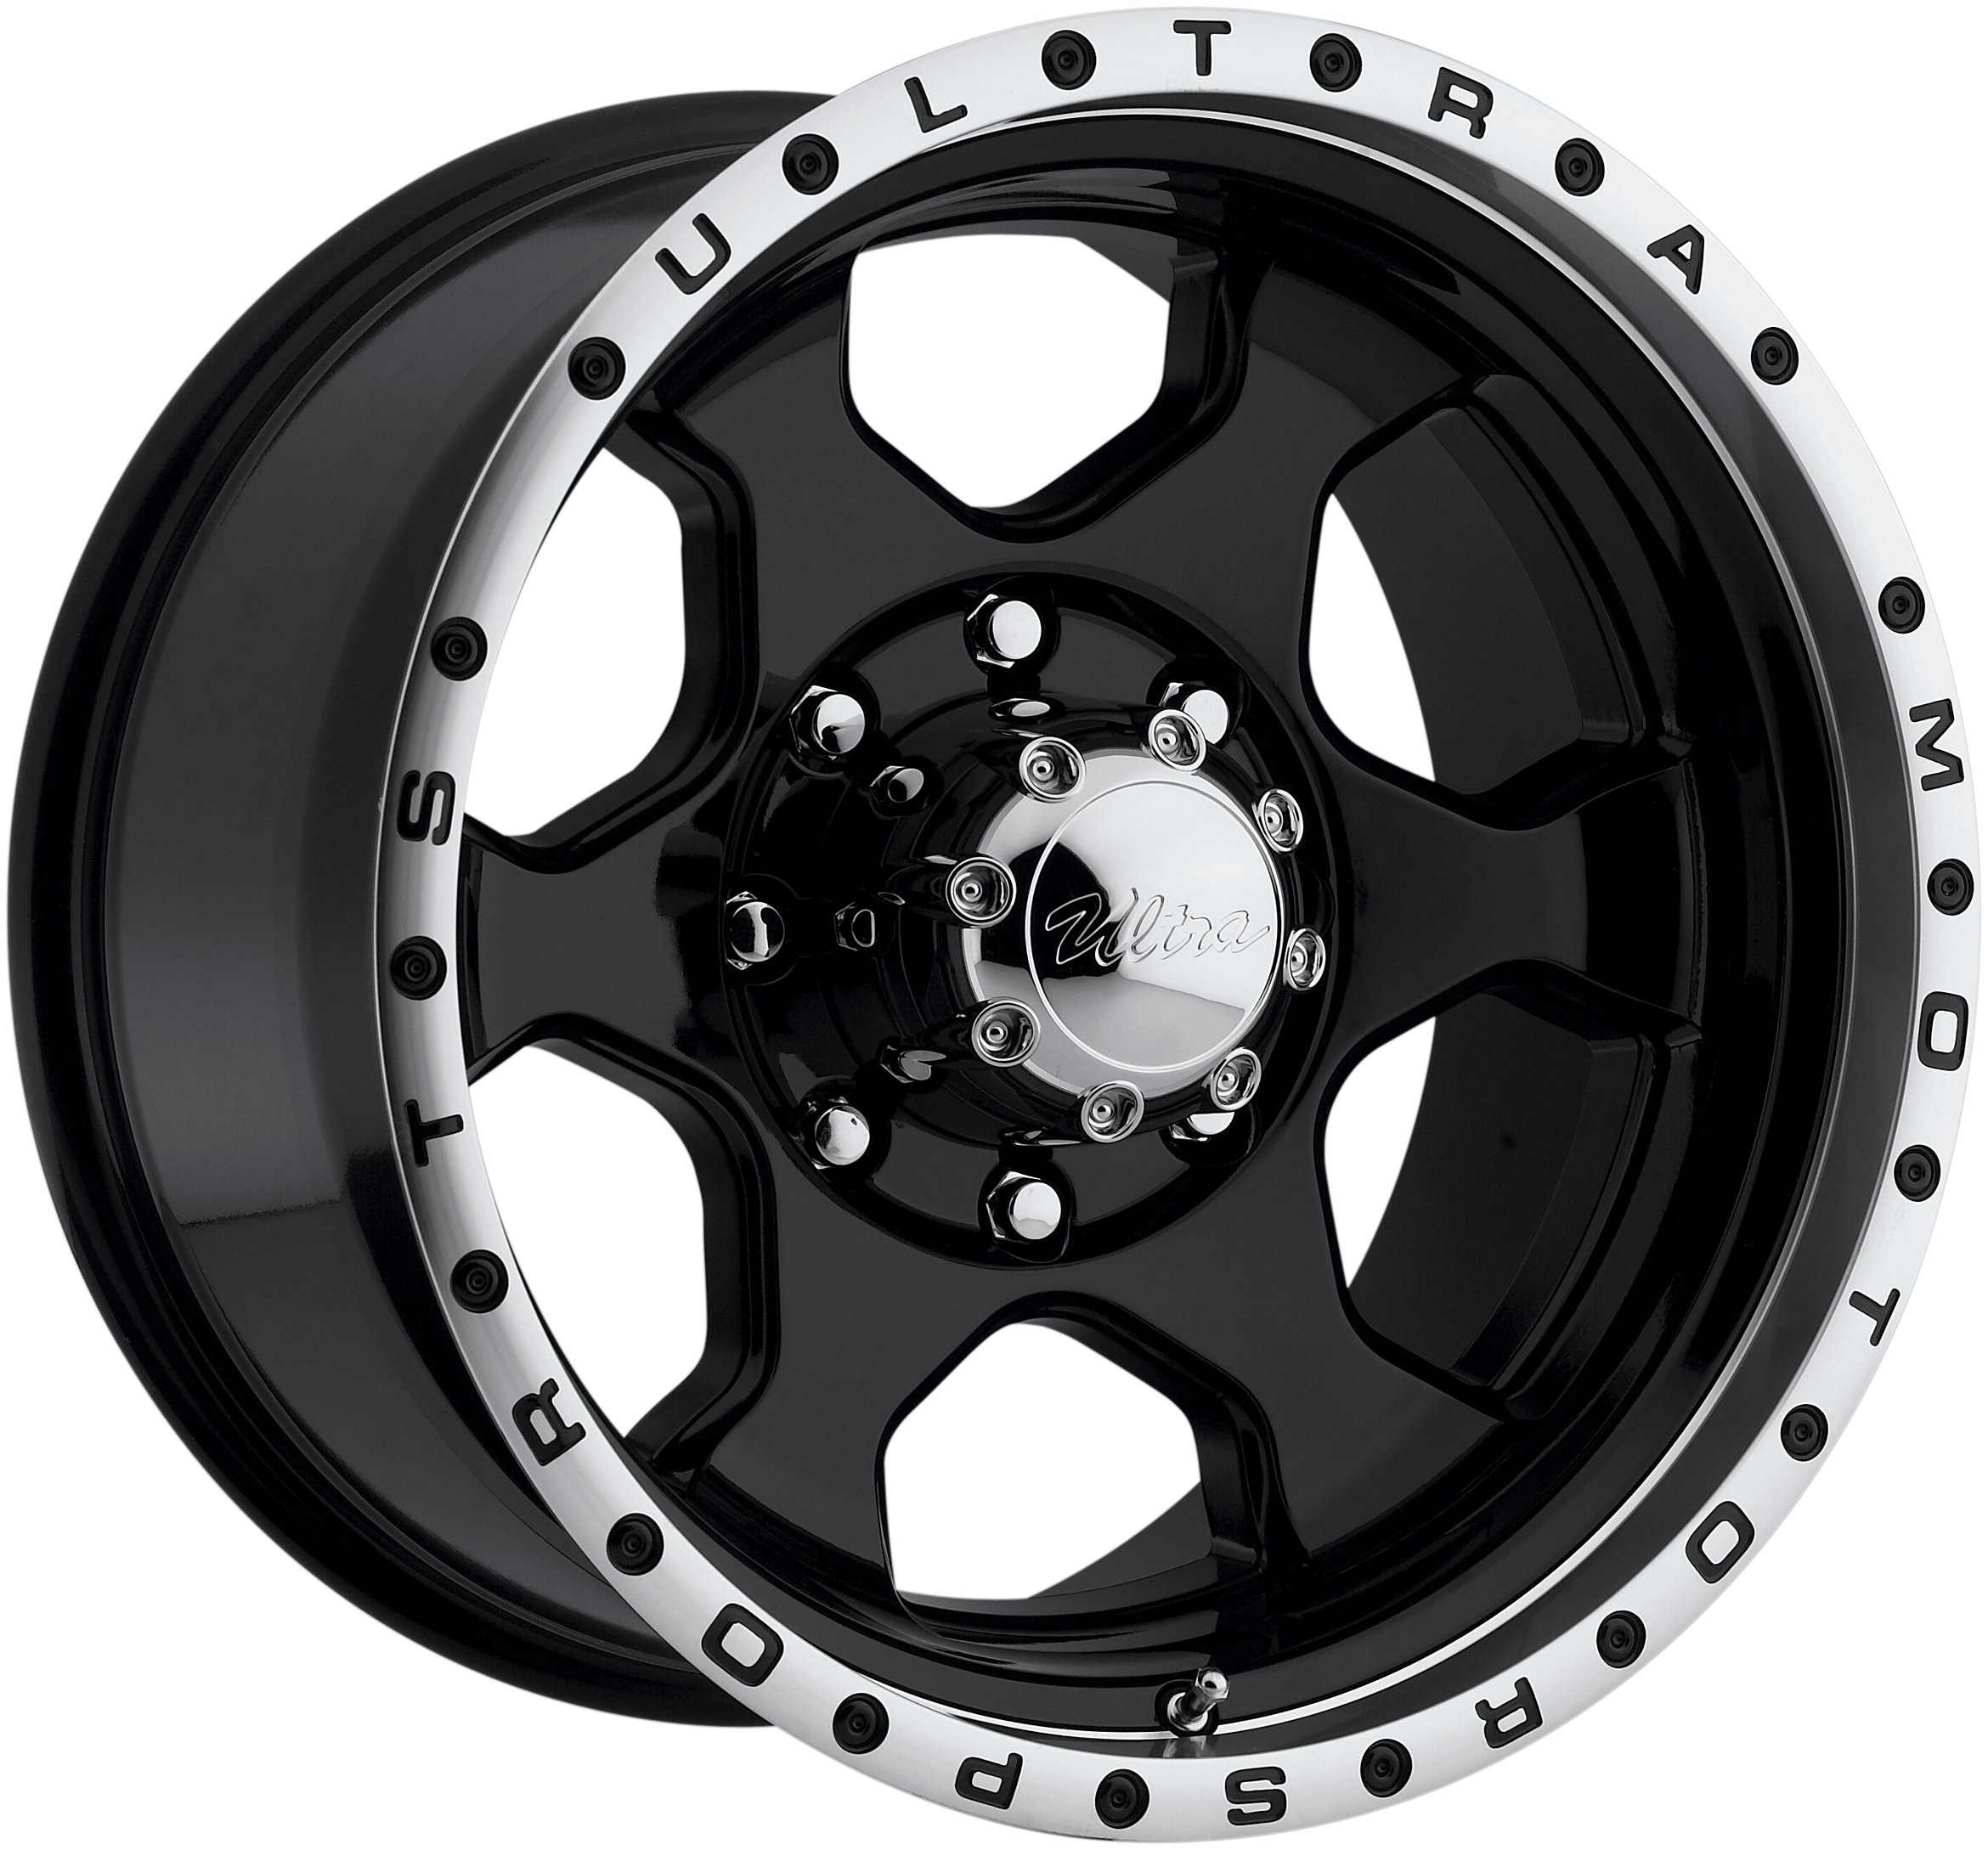 Ultra-Wheels-Ultra-Motorsports-Rogue-RWD-Type-175-Gloss-Black-Center-Wheel-with-Diamond-Cut-Lip-16x86x55